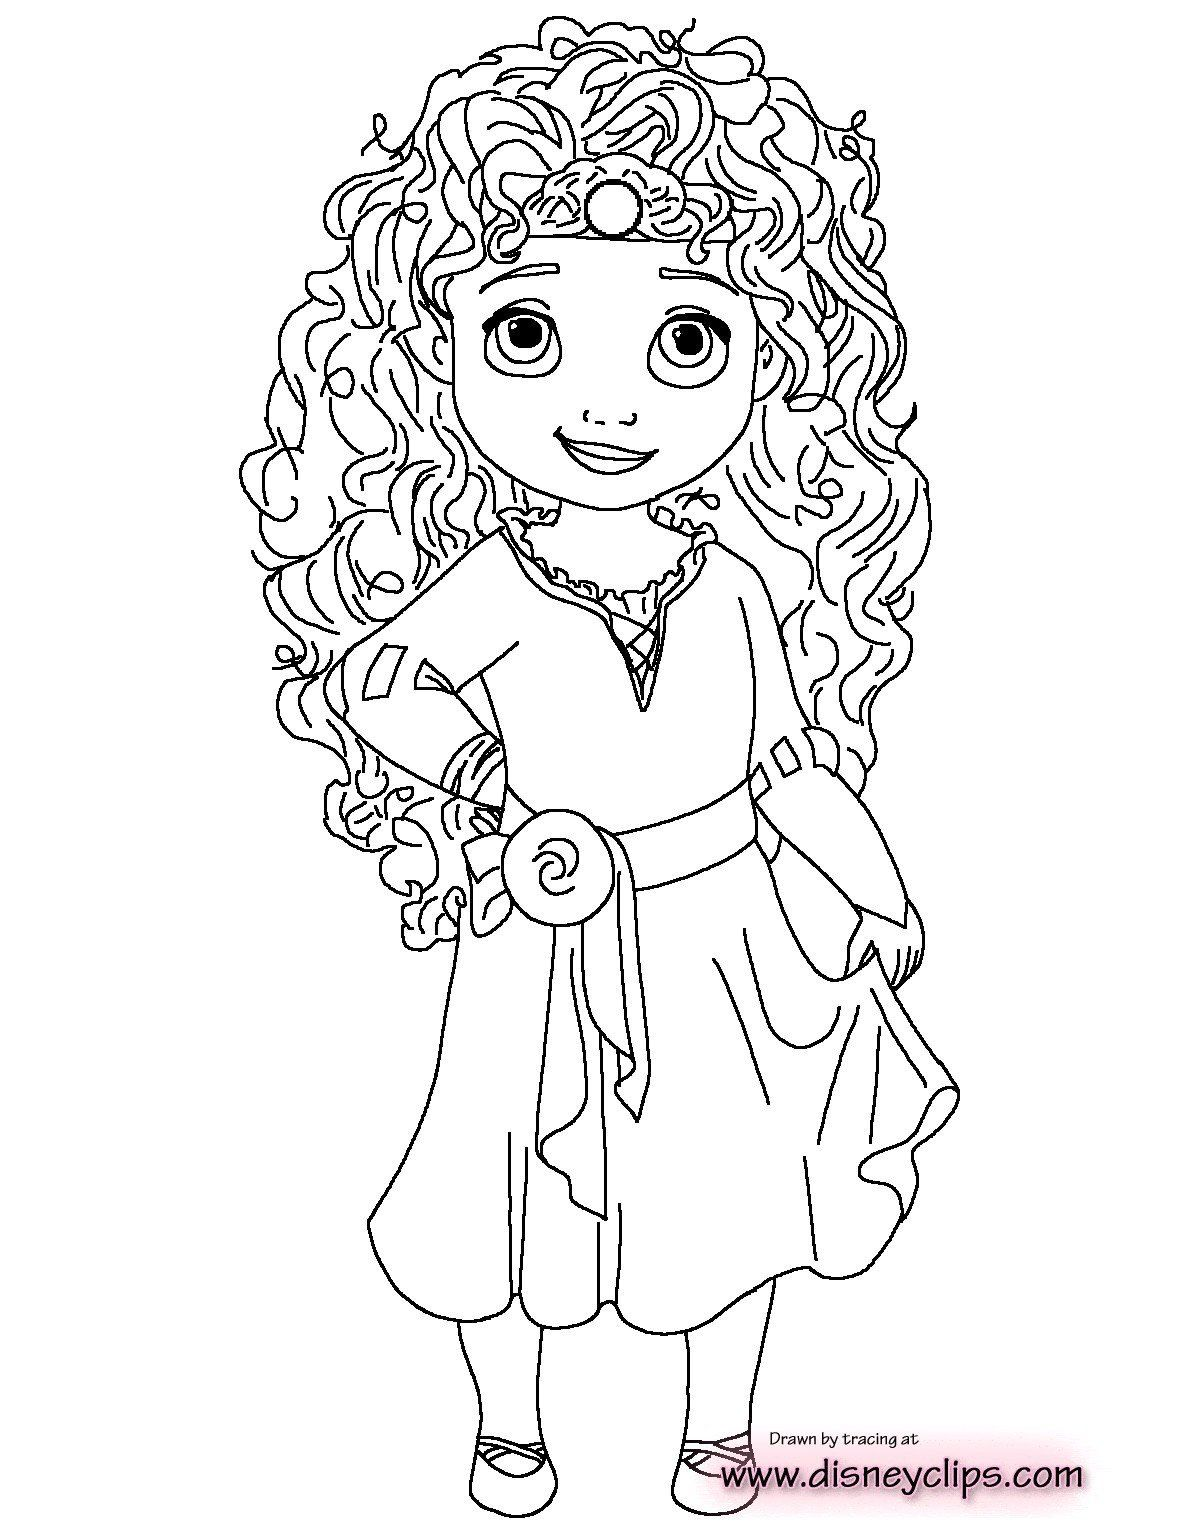 Disney Princesses Coloring Pages Luxury Coloring Pages Printable